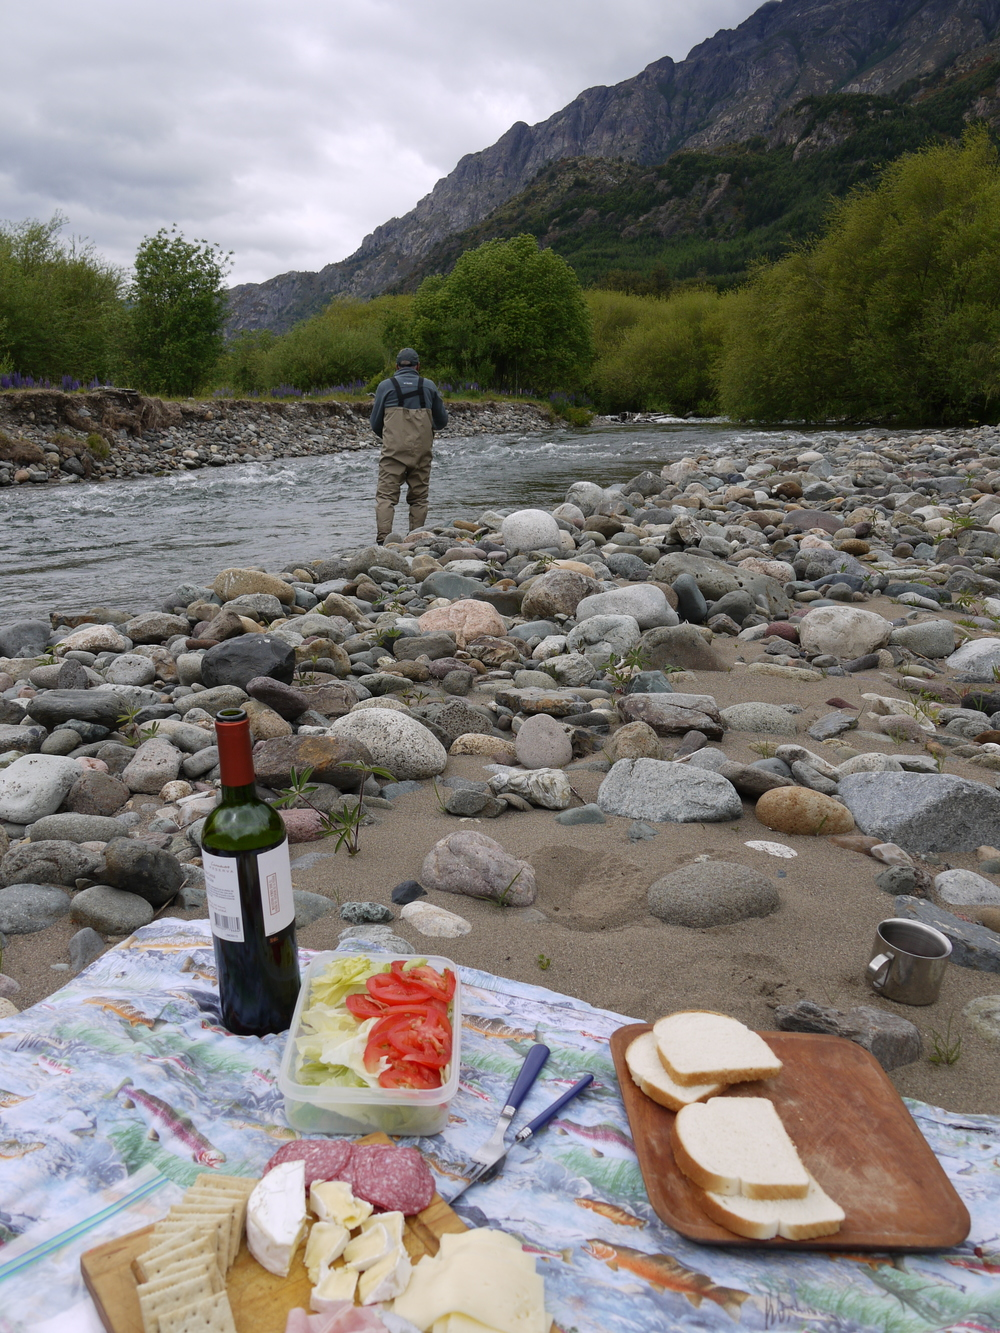 River picnic with a side of fishing.